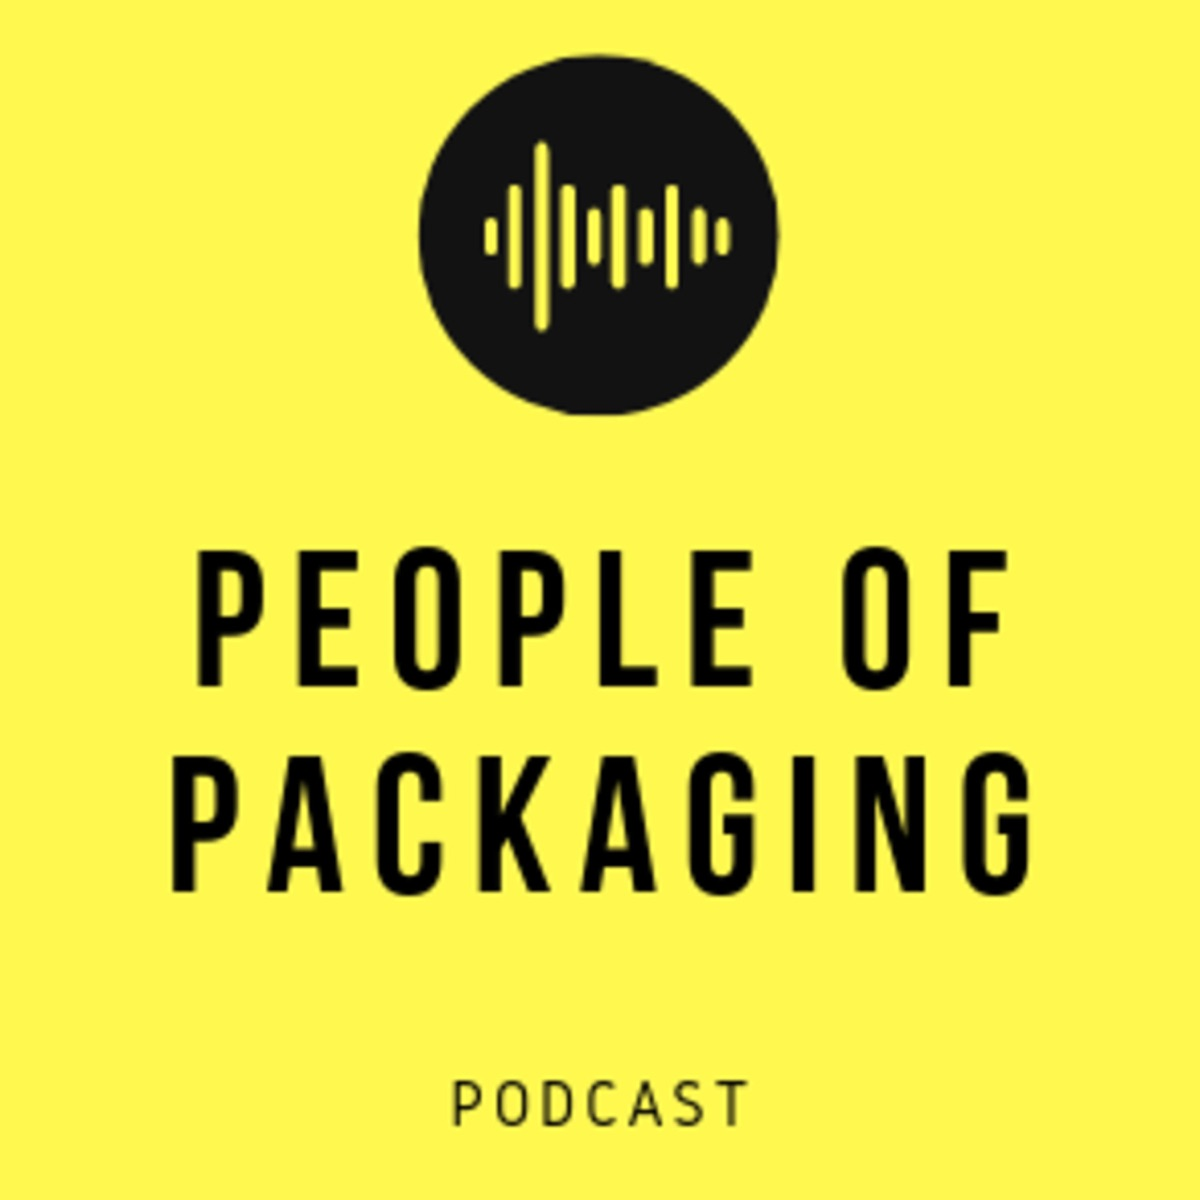 People of Packaging Podcast